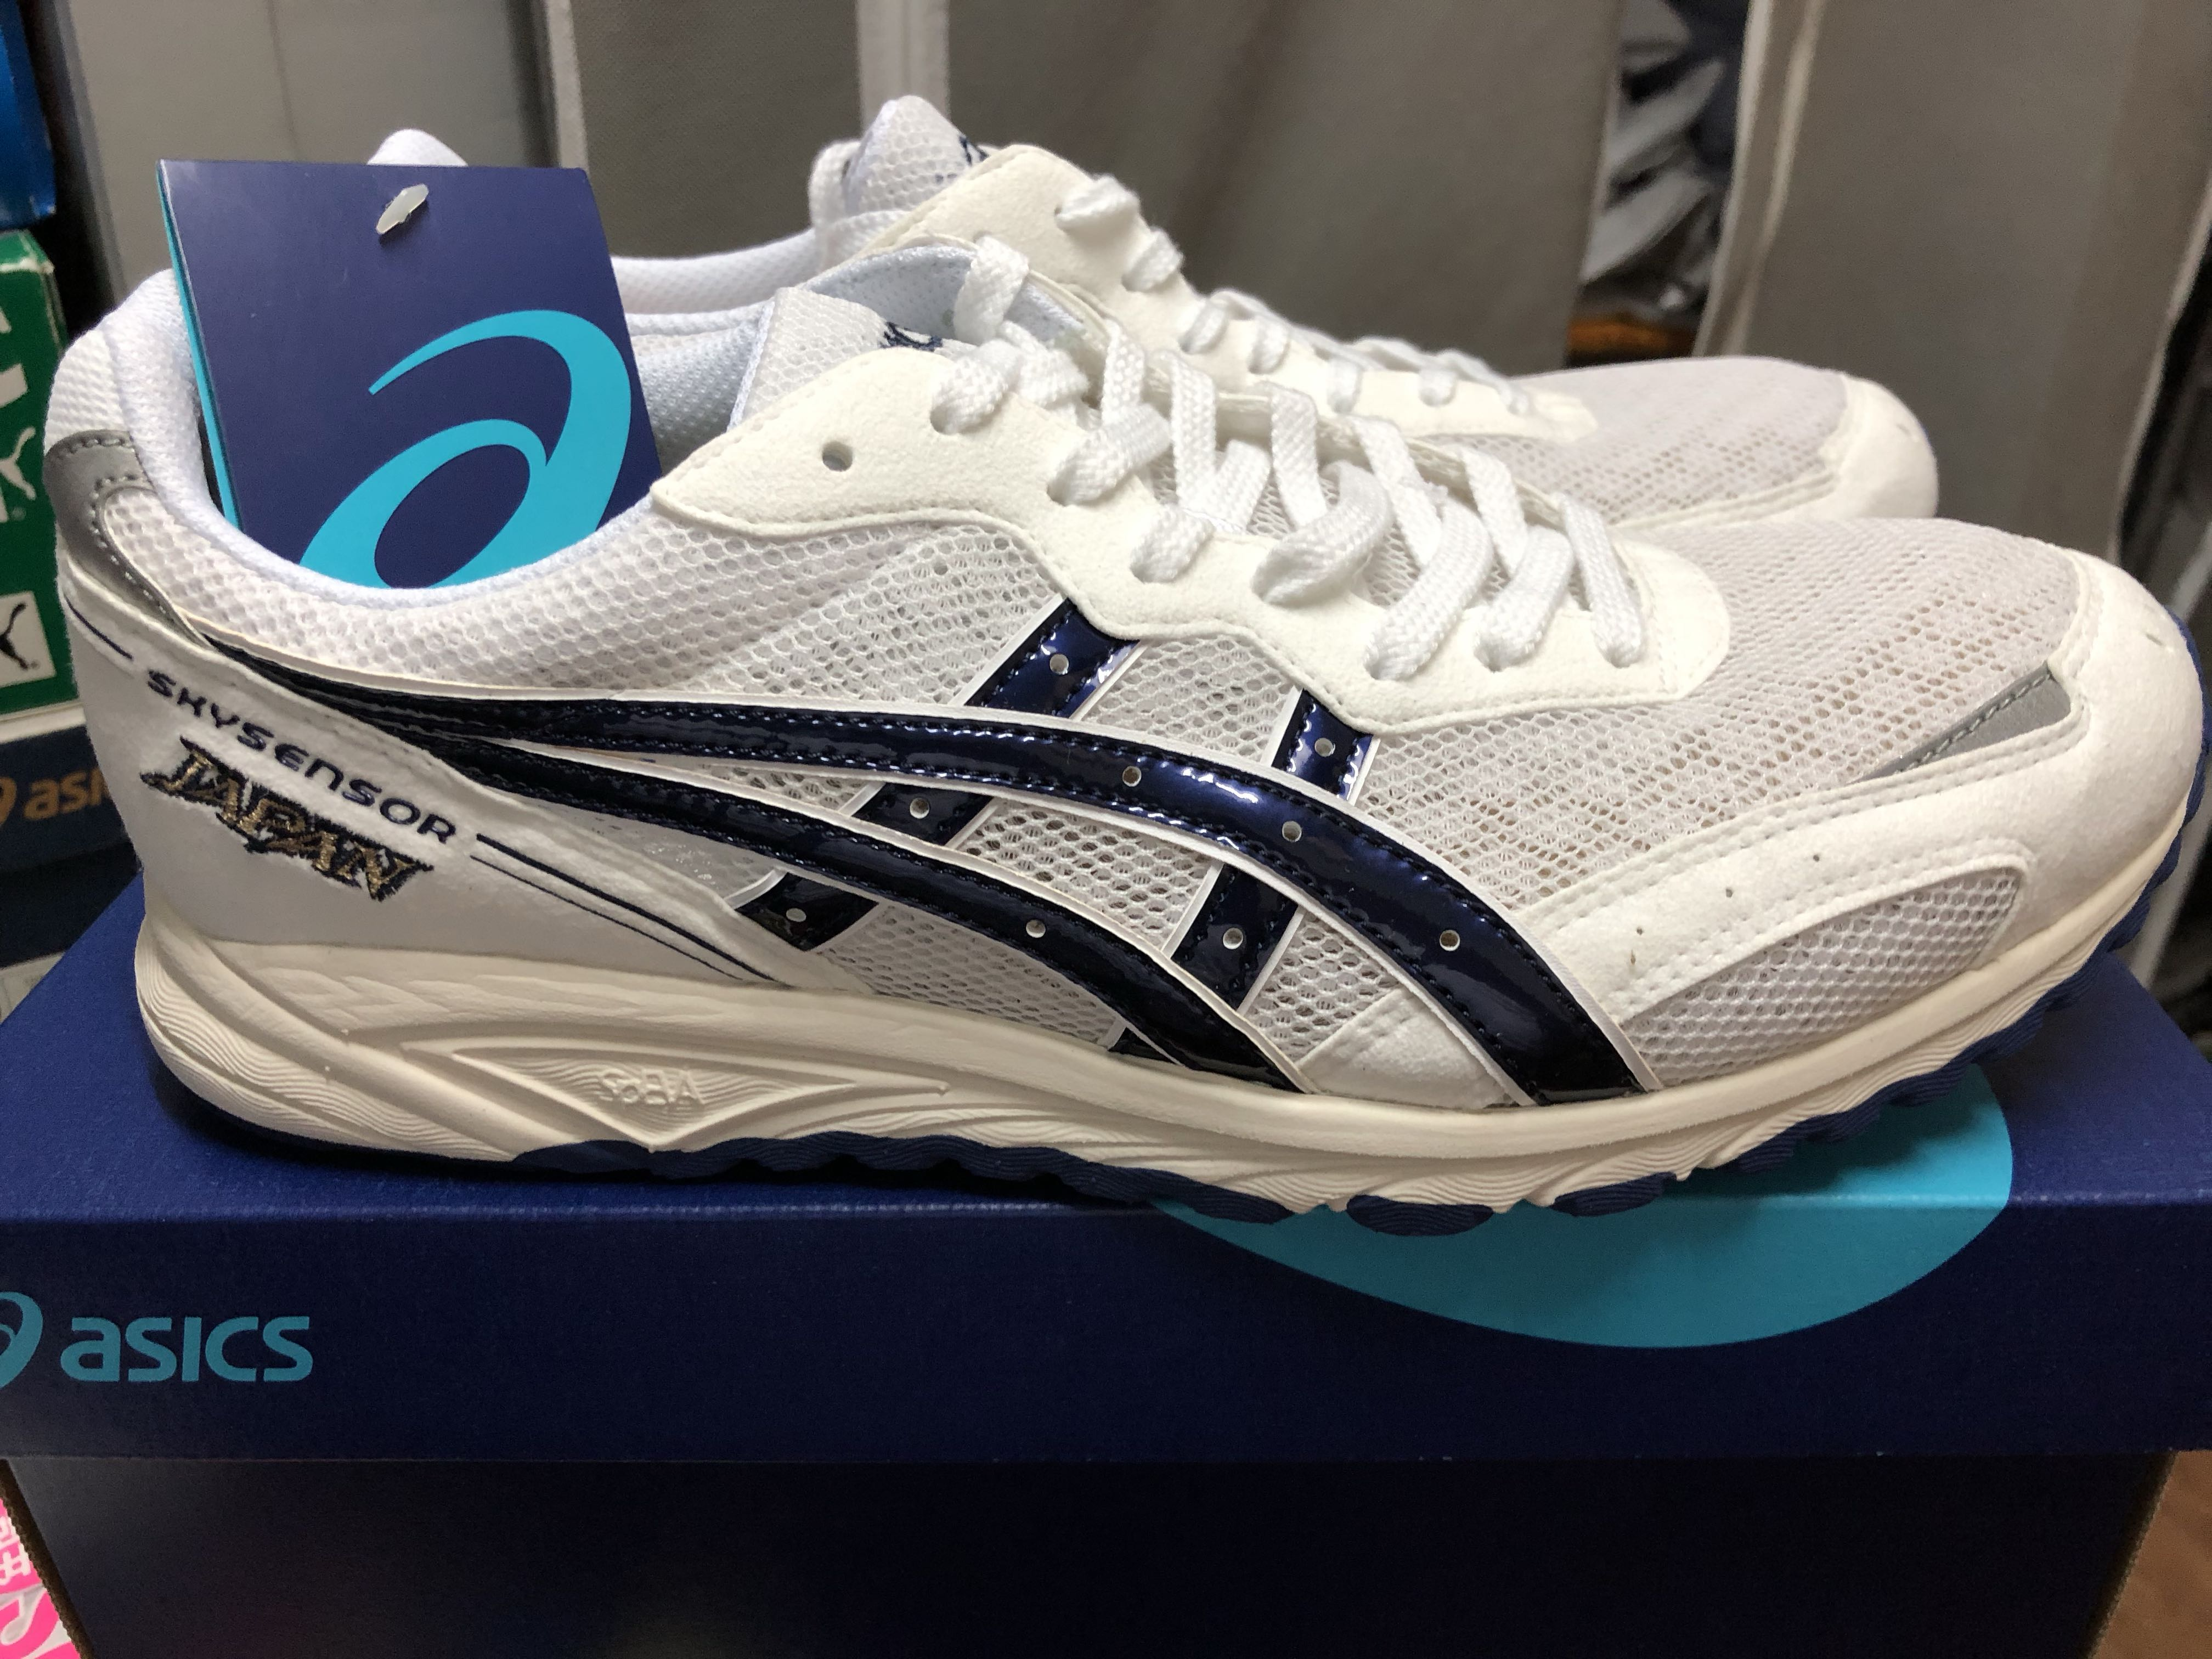 plus récent 429b7 33f27 ASICS skysensor running shoes ( made in Japan )